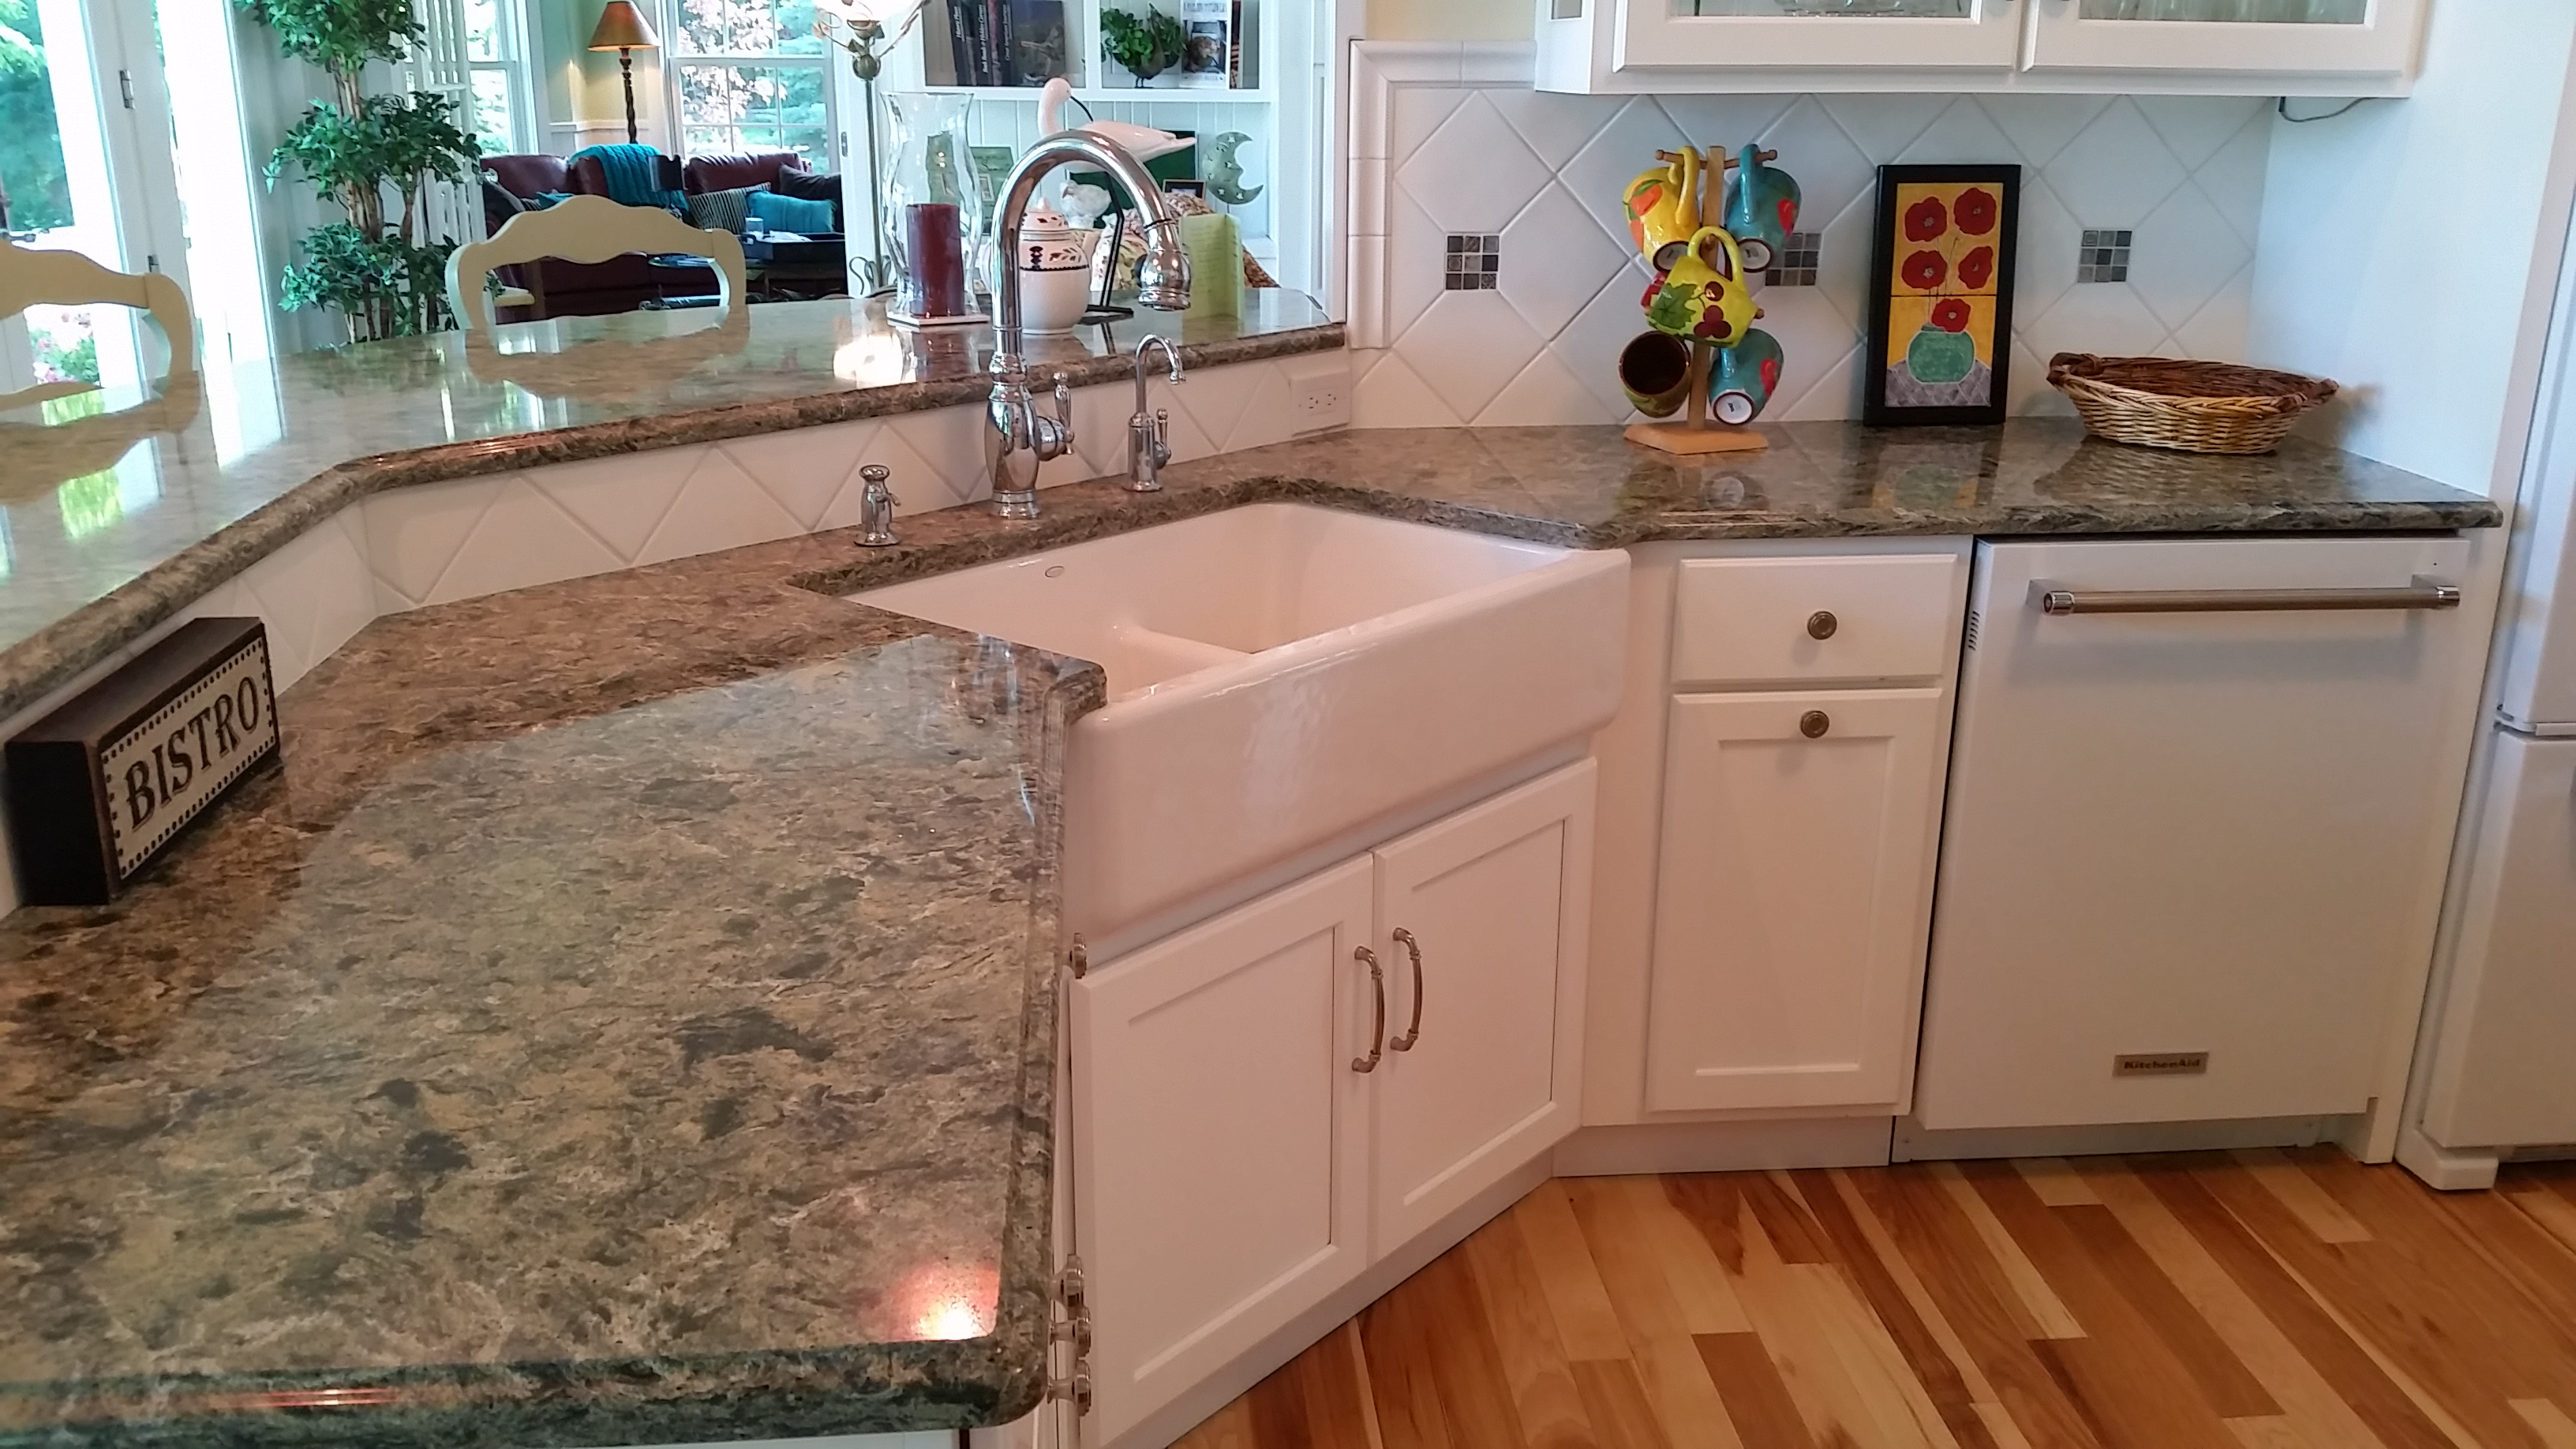 Cottage kitchen by Kalamazoo Custom Kitchens and Baths, Kalamazoo, MI